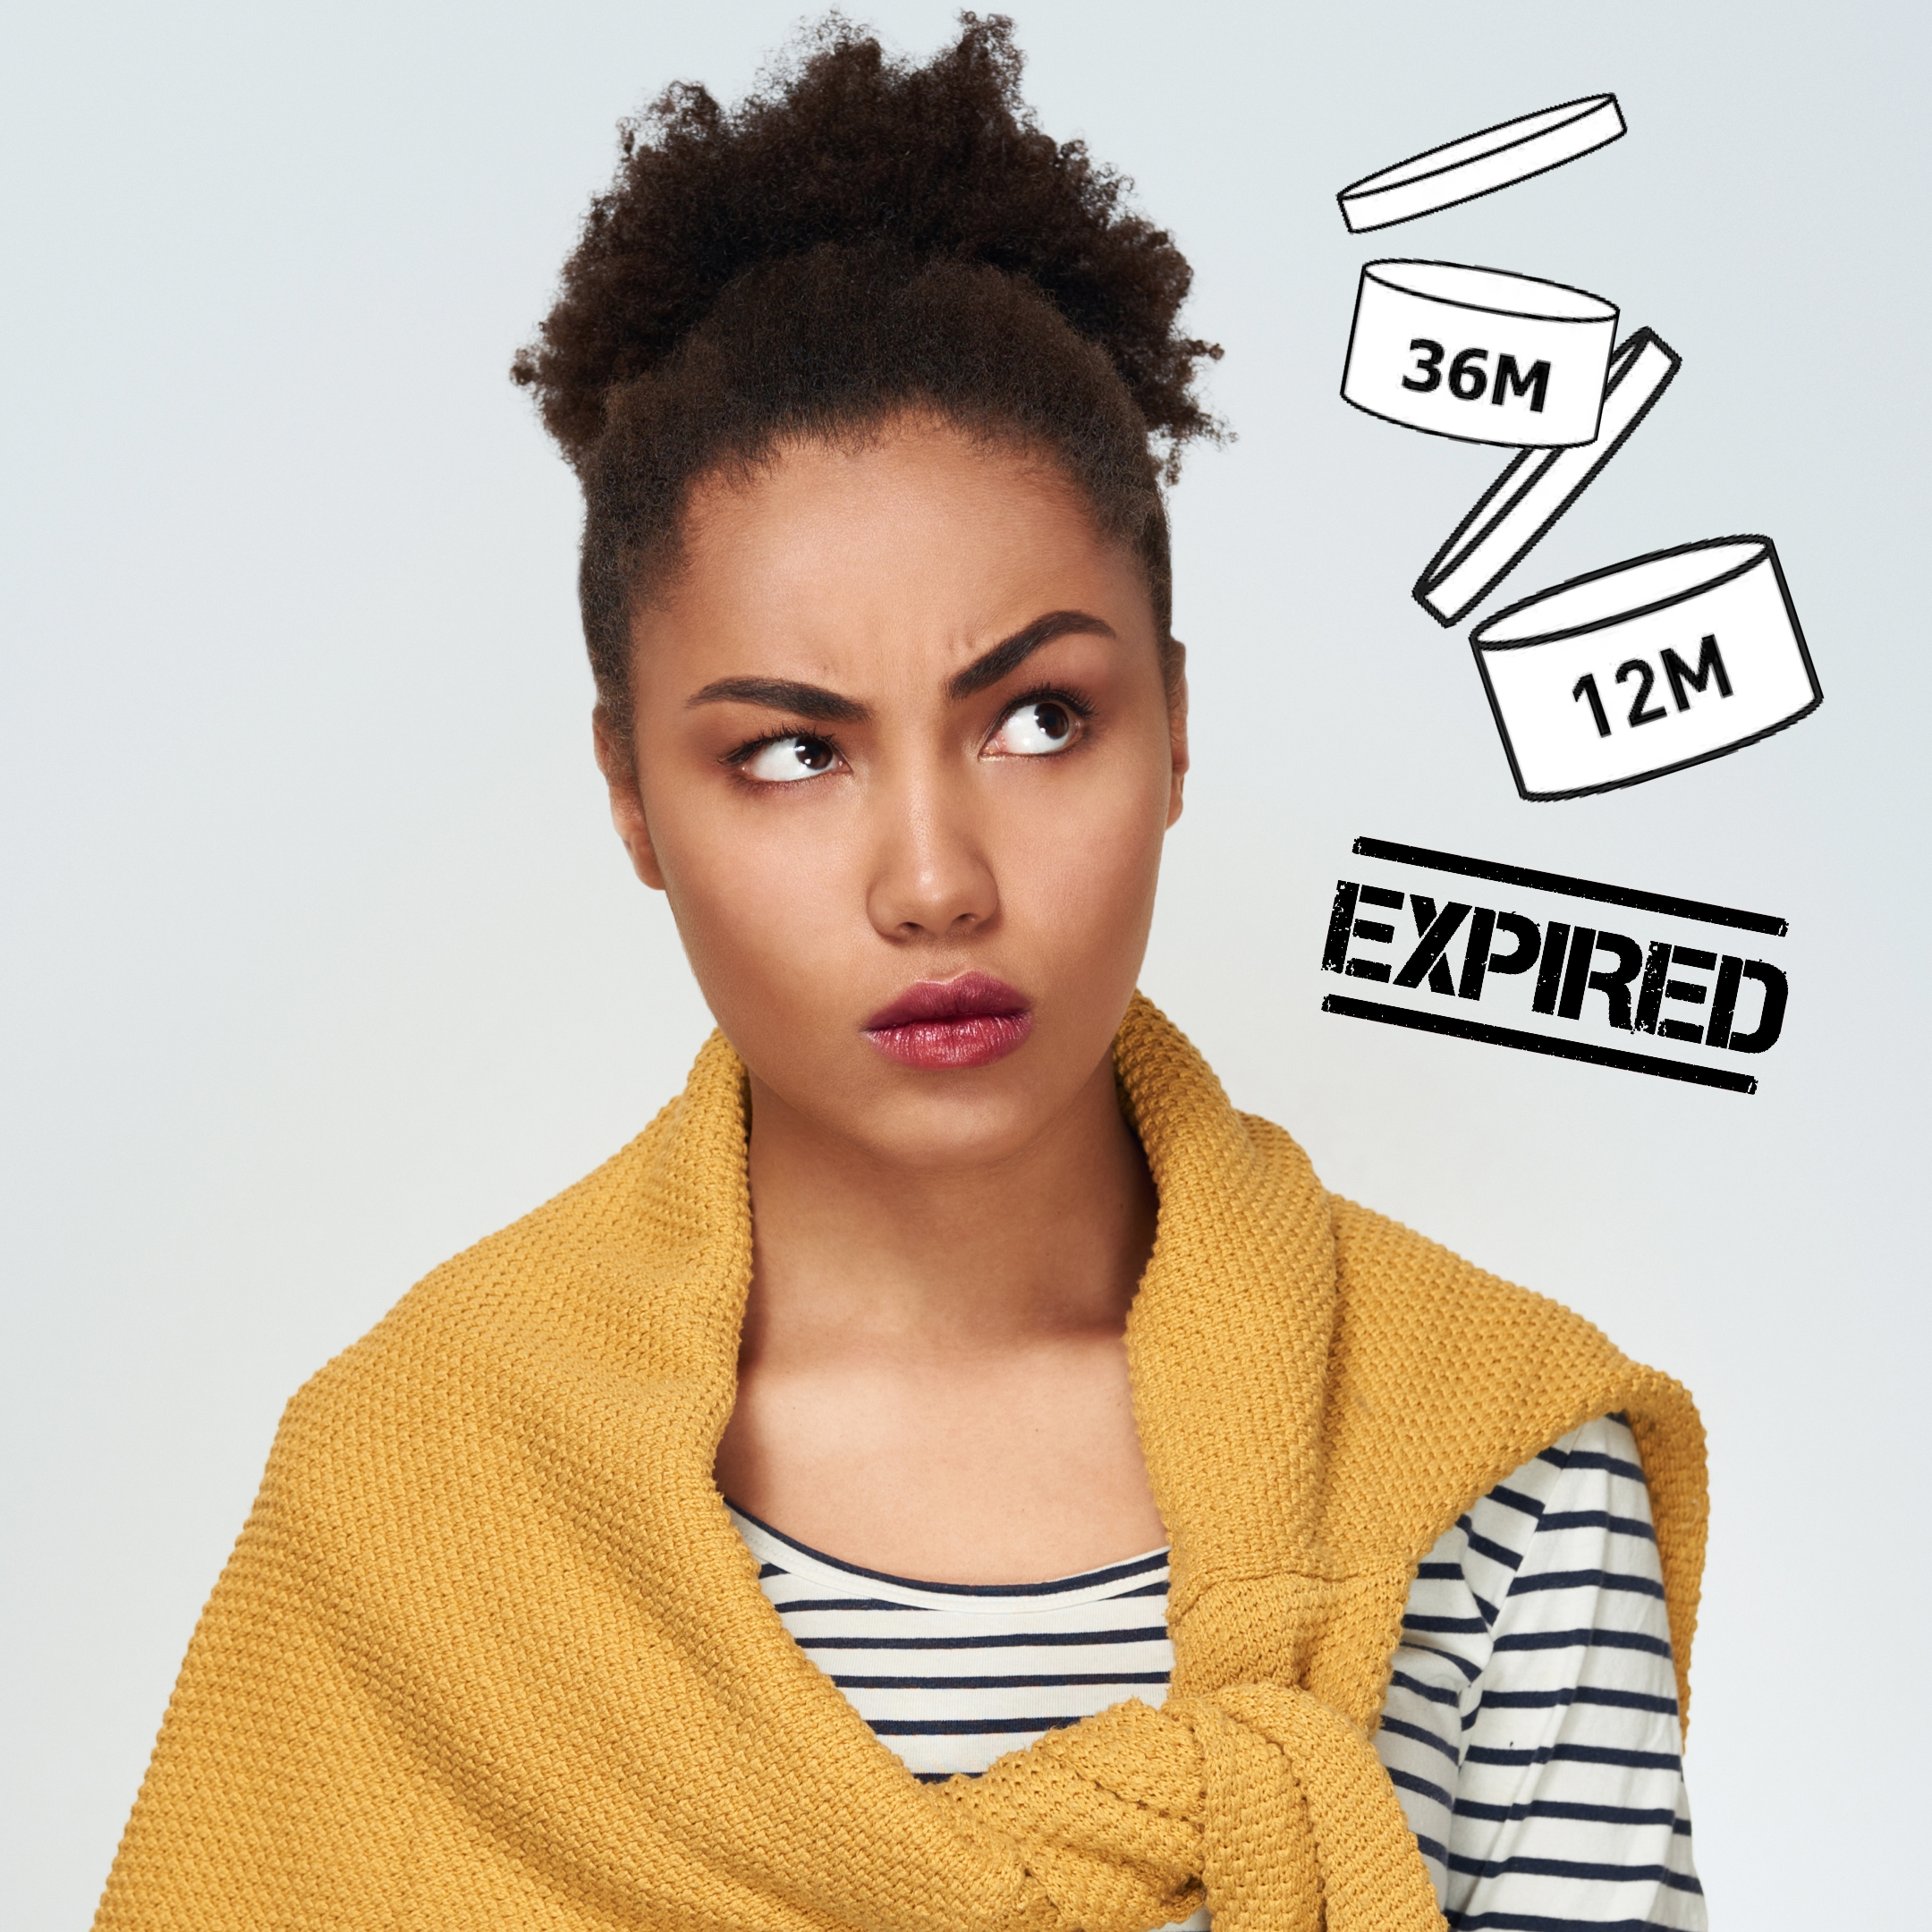 What Happens When Hair Products are Expired?